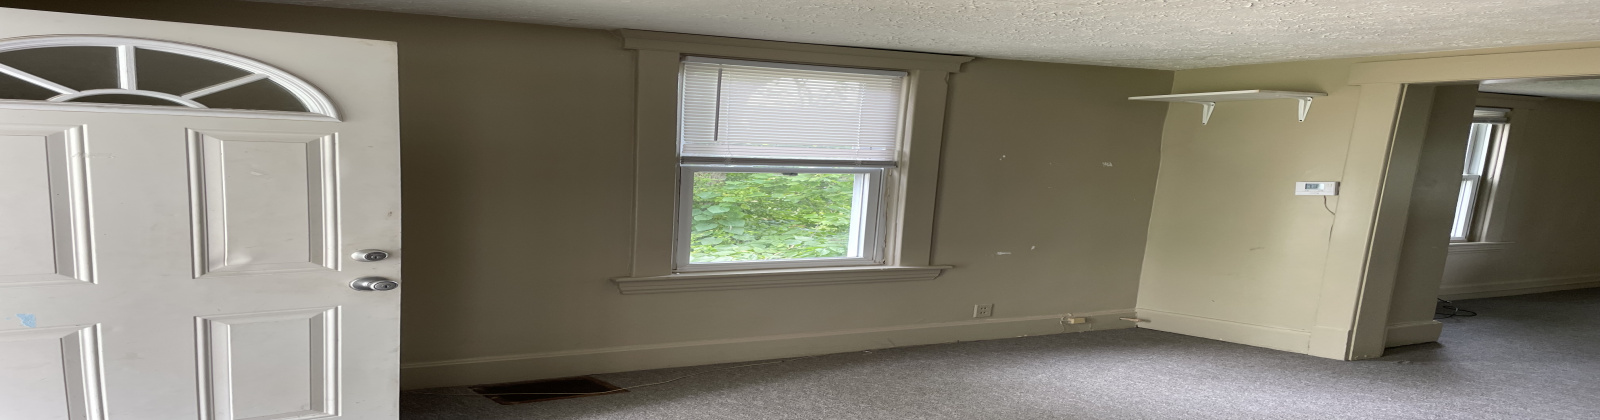 51 E State Street Athens, Ohio, 3 Bedrooms Bedrooms, ,1 BathroomBathrooms,Apartment,For Rent,E State,1020